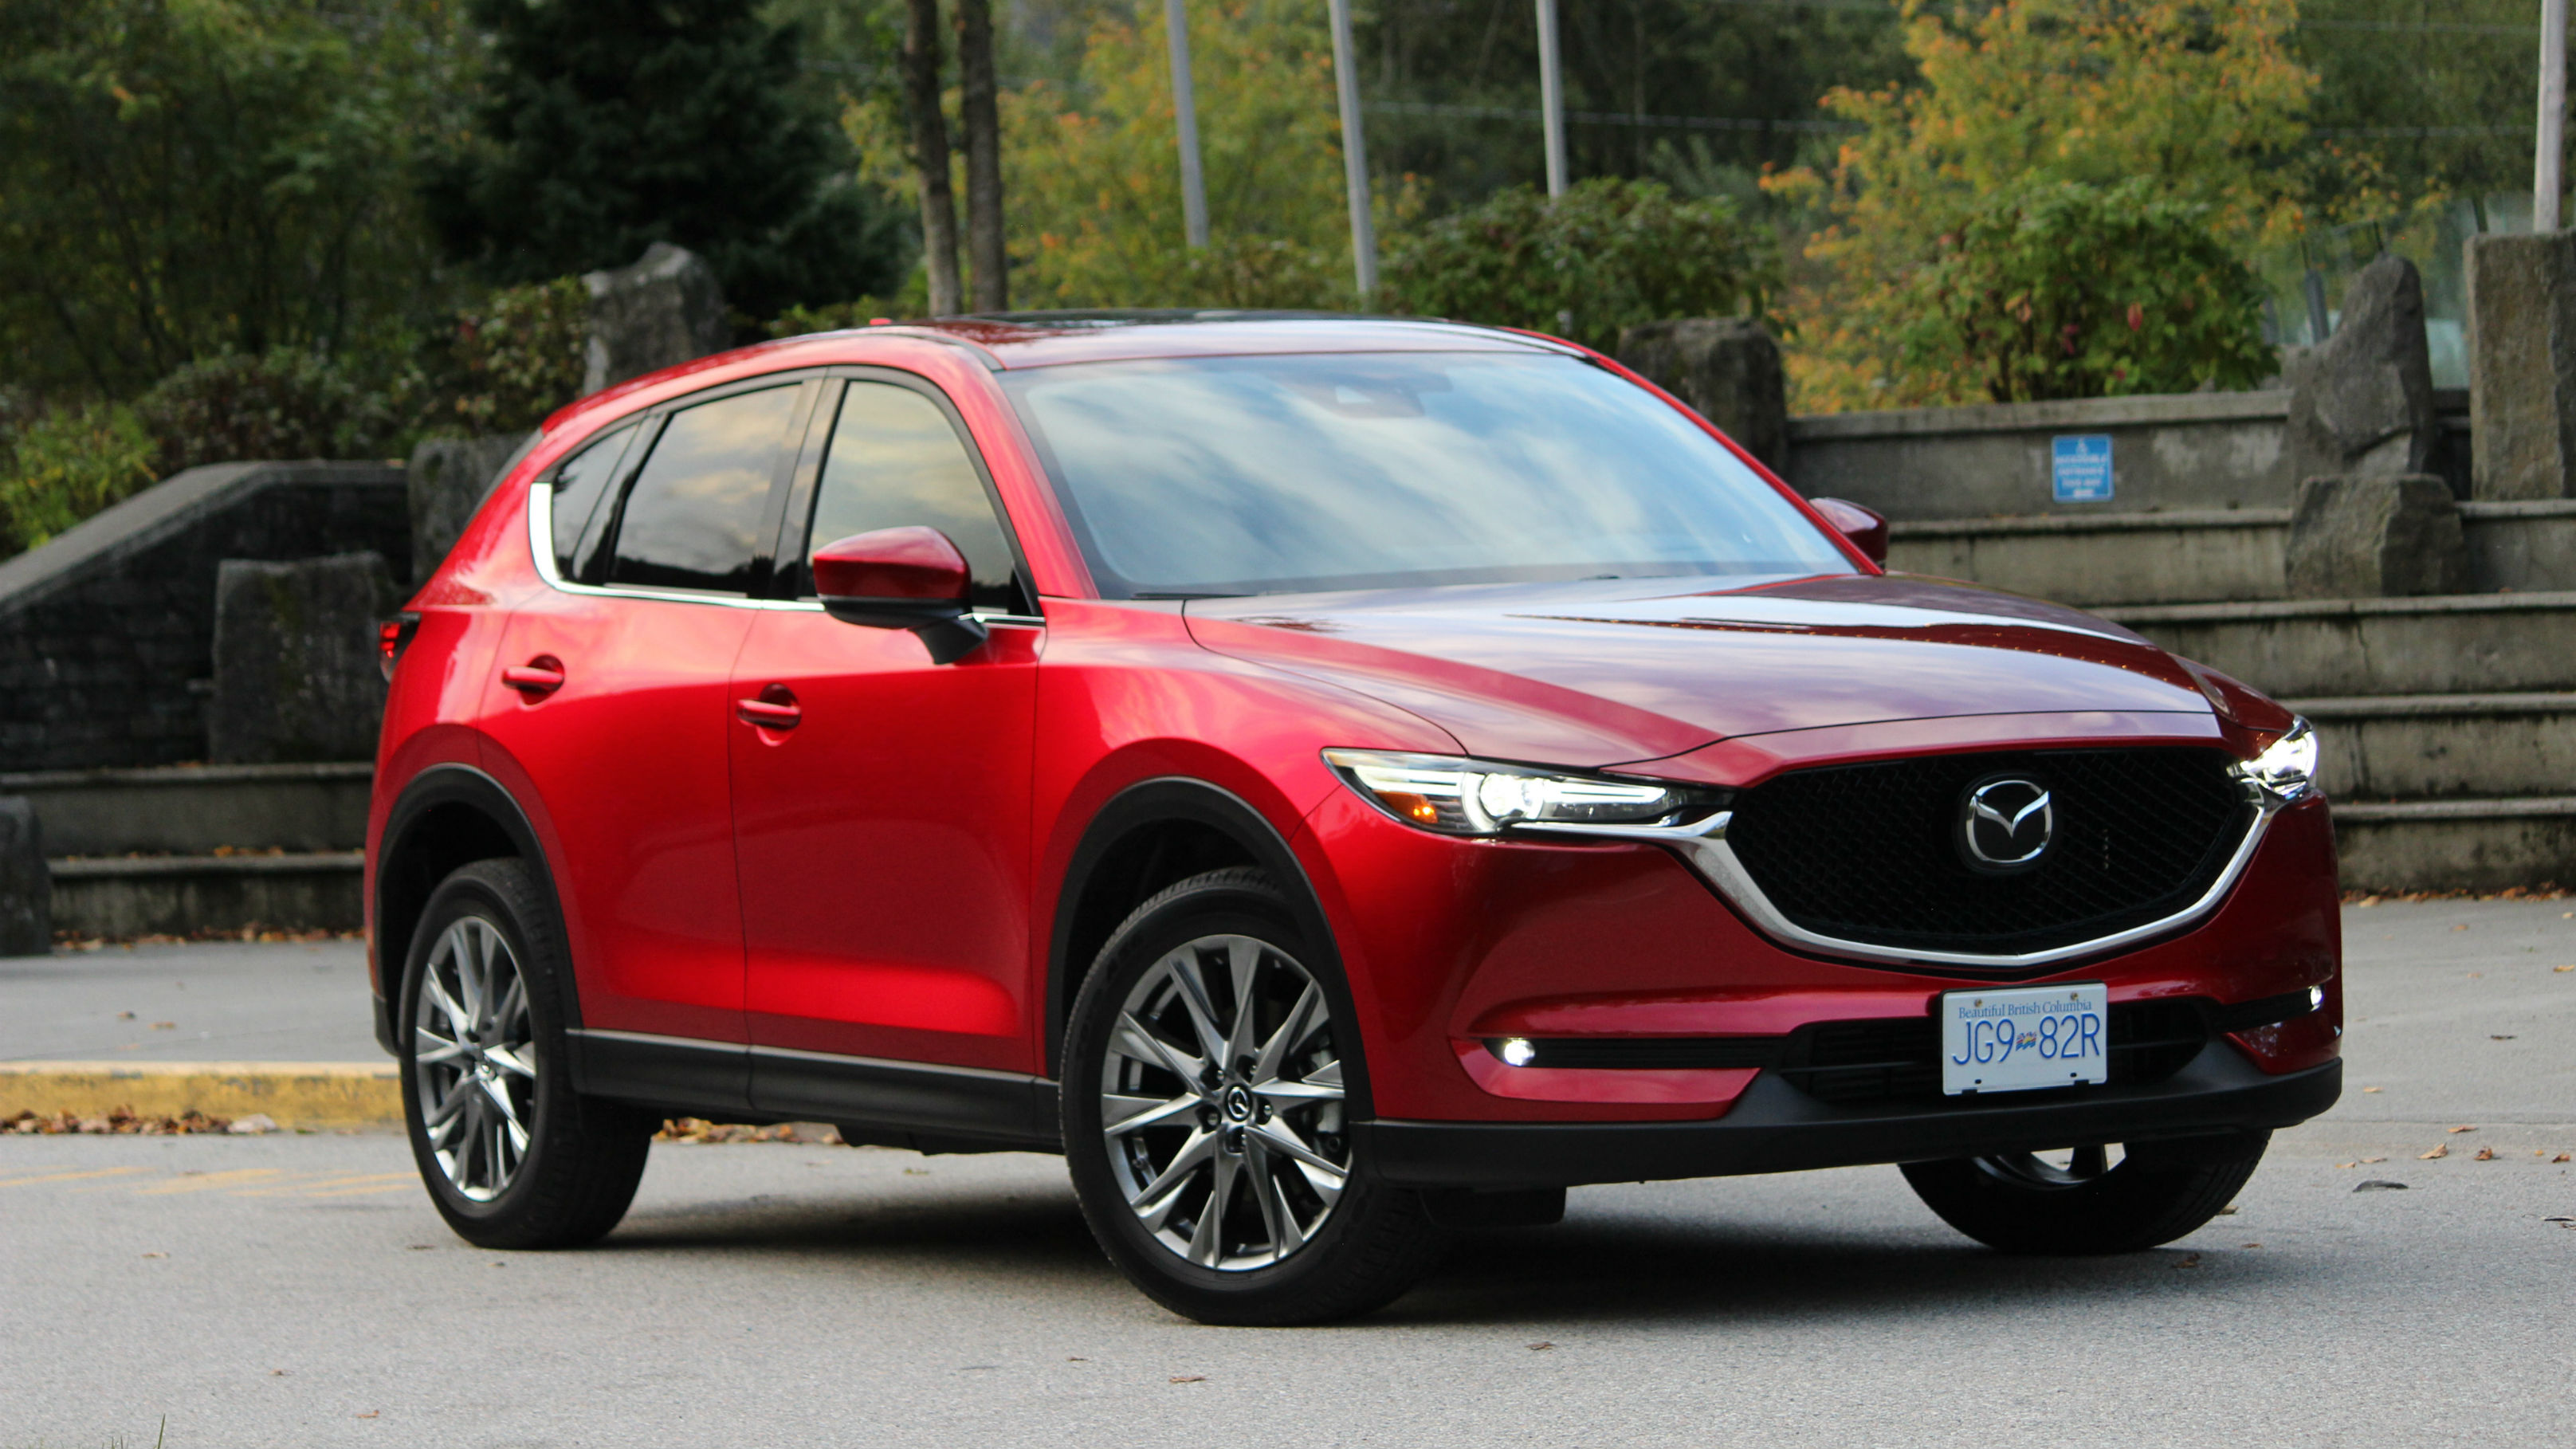 Review 2019 Mazda CX-5 Diesel